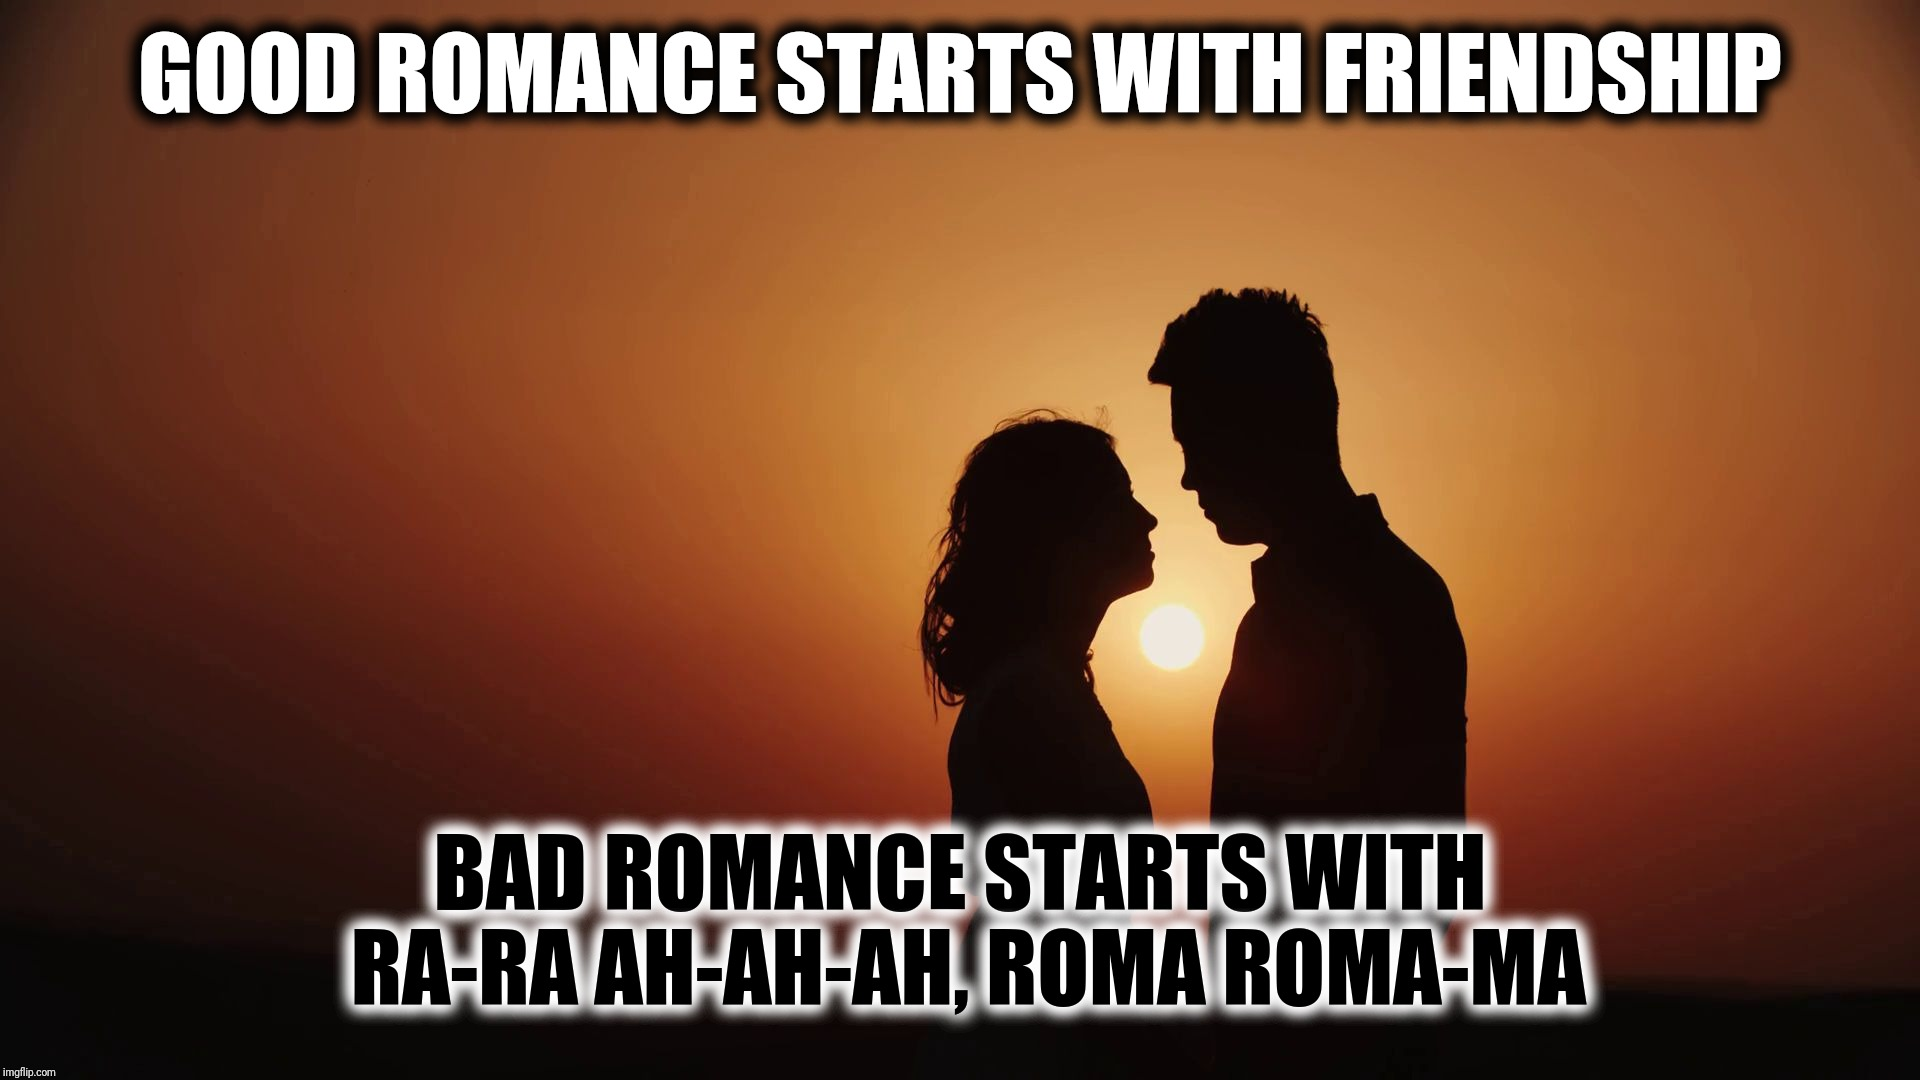 Good Romance vs Bad Romance | GOOD ROMANCE STARTS WITH FRIENDSHIP BAD ROMANCE STARTS WITH RA-RA AH-AH-AH, ROMA ROMA-MA | image tagged in romance sunset silhouette looking at each other,lady gaga,love and friendship,romantic,lovers,bad puns | made w/ Imgflip meme maker